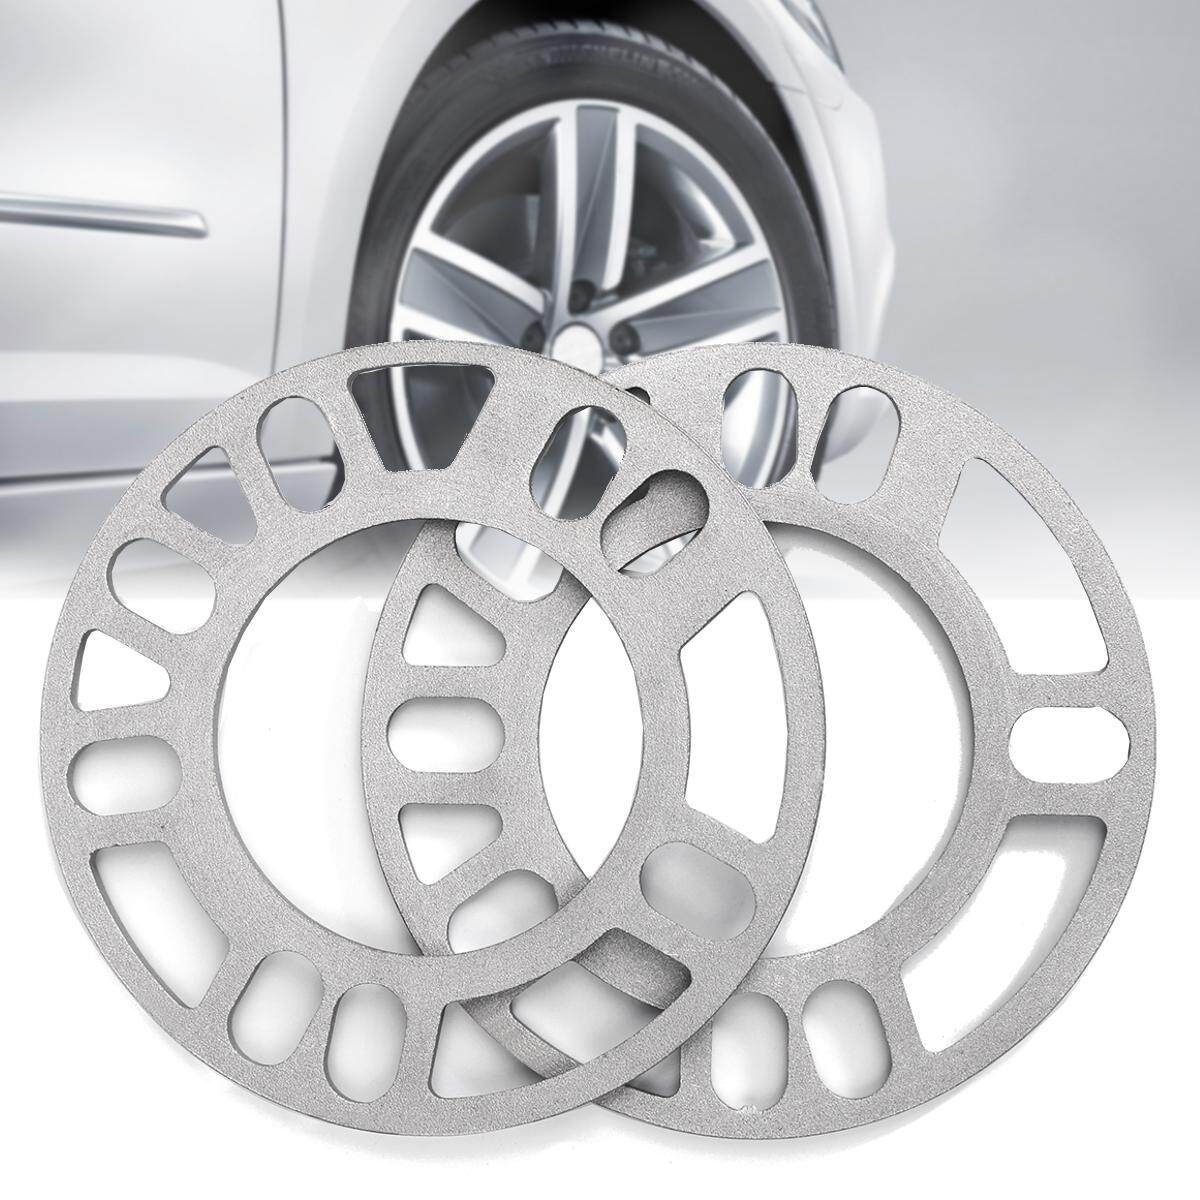 5mm Alloy Wheel Spacer Shims - Universal Full Set Of 4 - 4x100/4x108/4x114.3 By Channy.